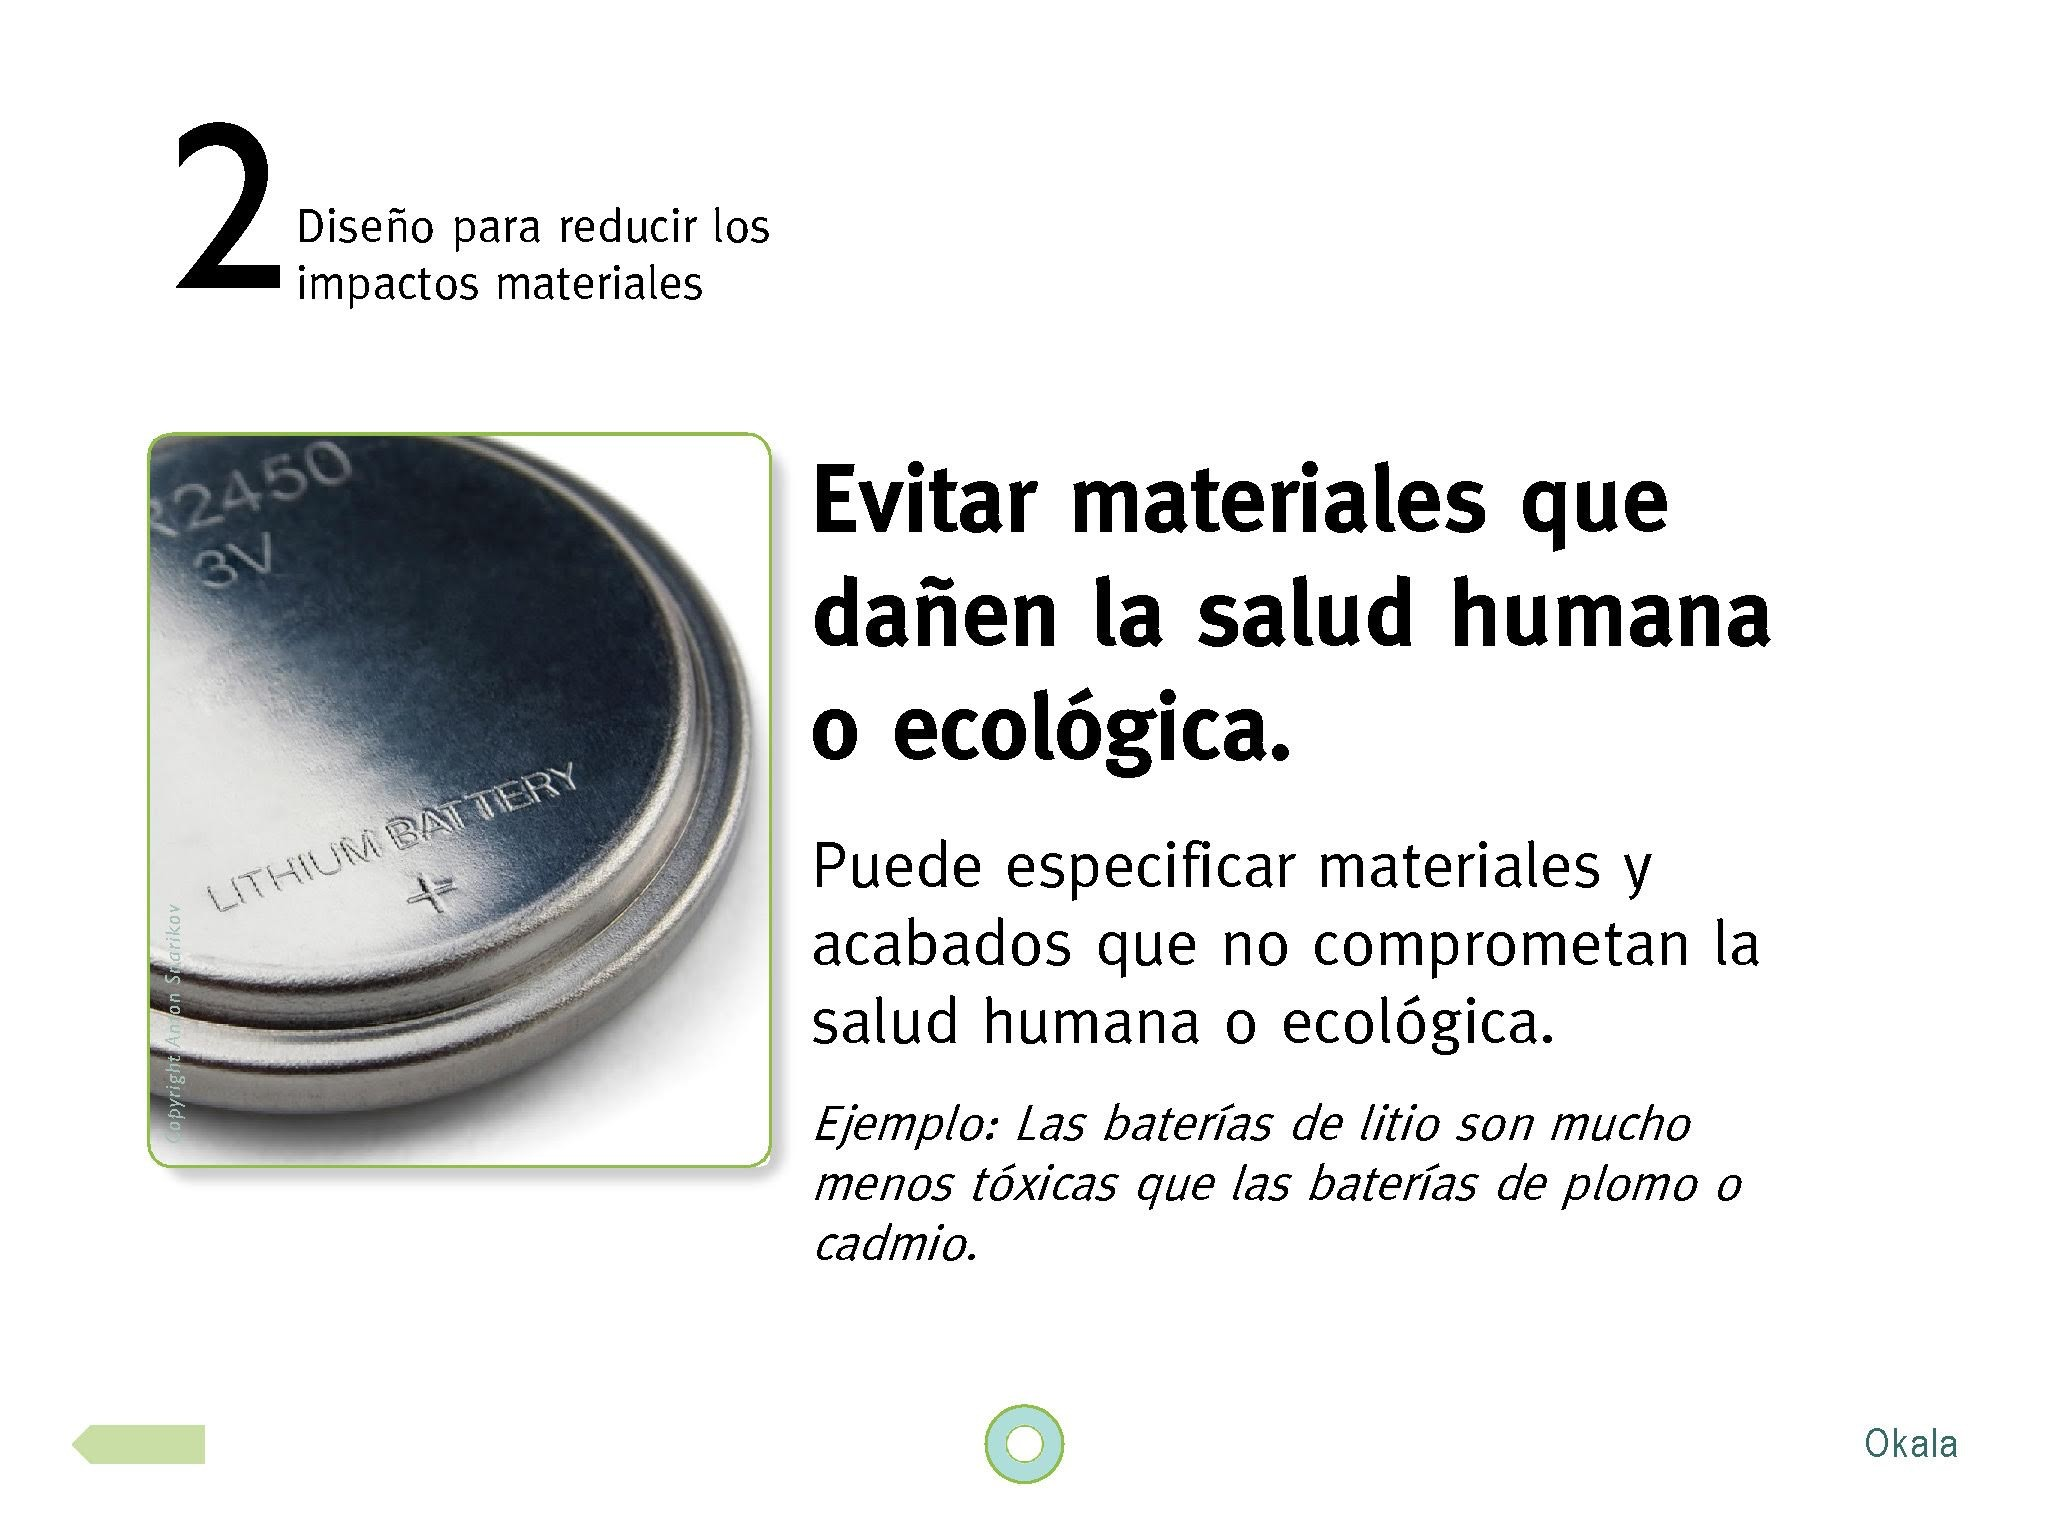 okala-ecodesign-strategy-guide-2012-spanish.new_page_09-1